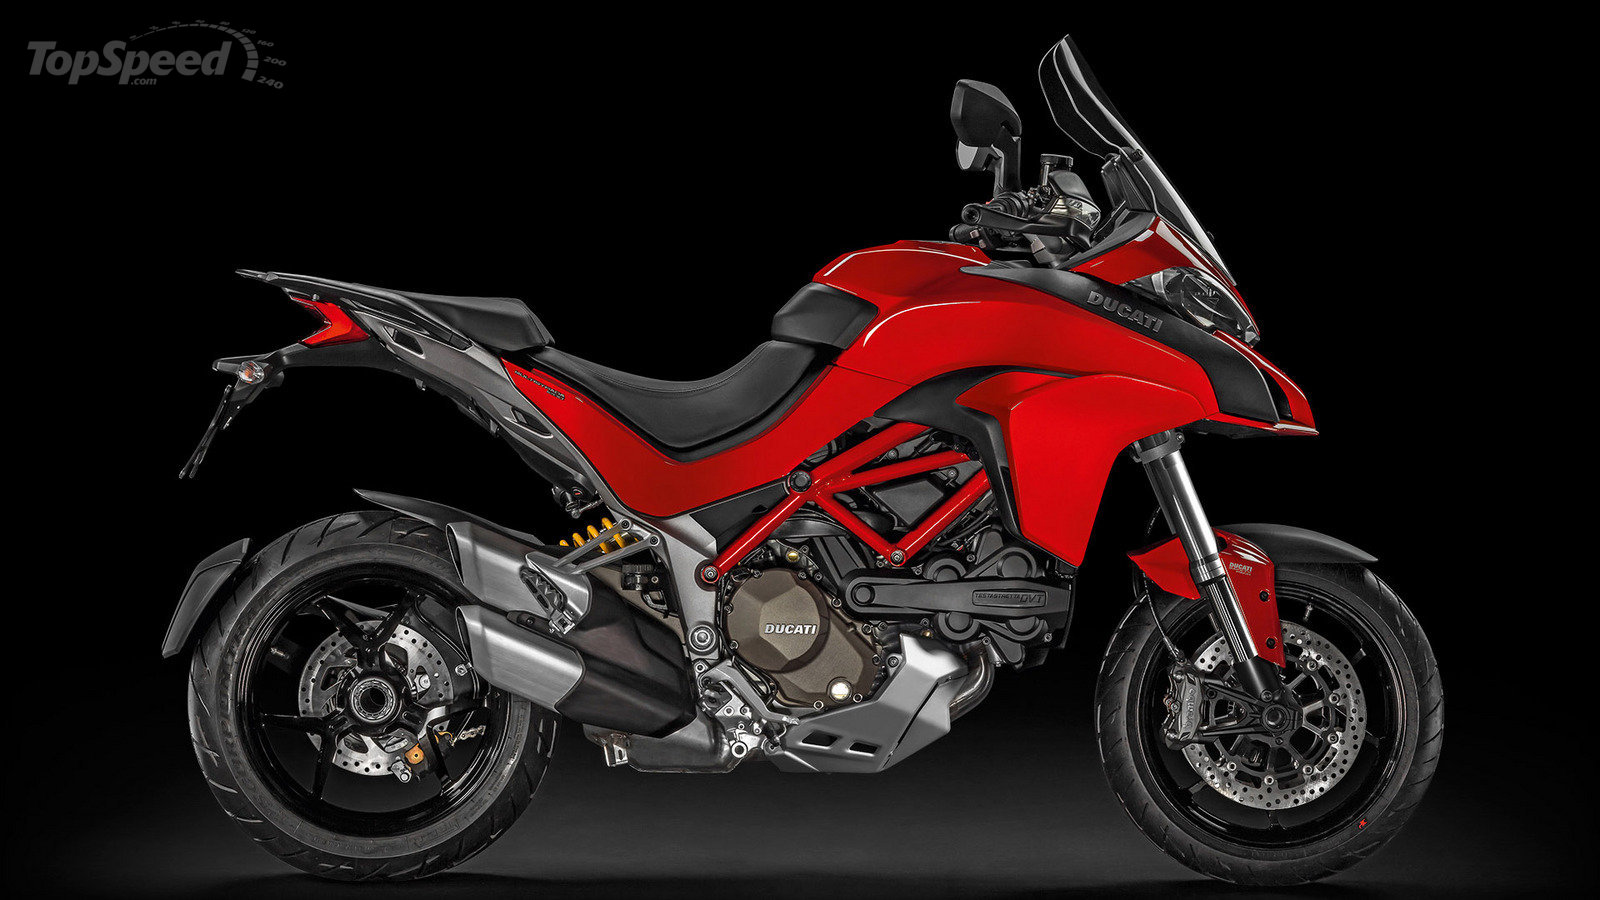 Ducati Multistrada 1200 2015 wallpapers #13194